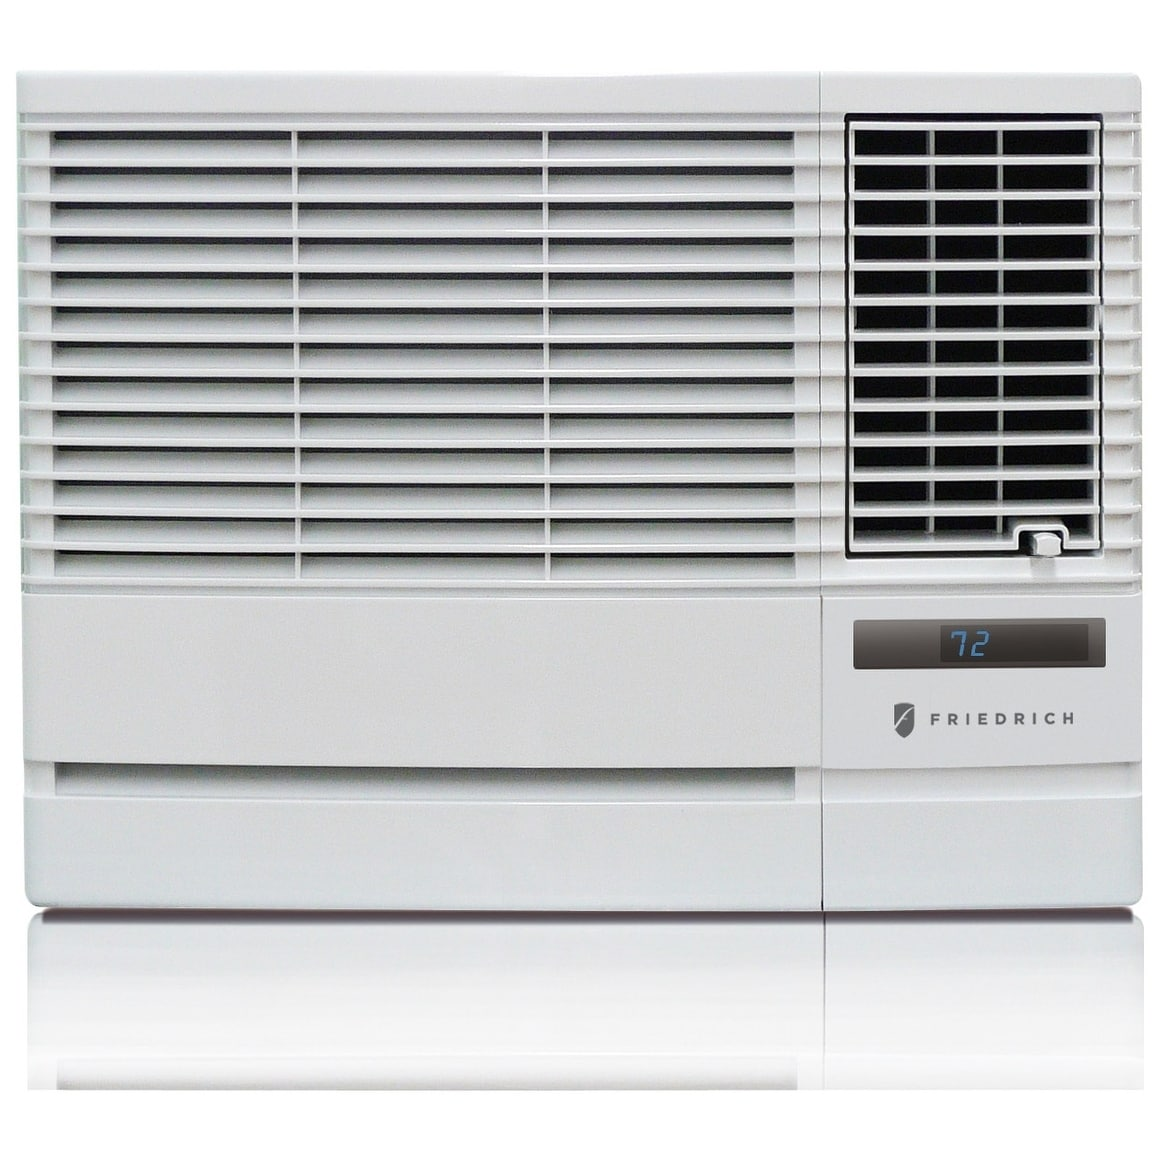 Friedrich Chill 10,000 BTU Room Air Conditioner 115V